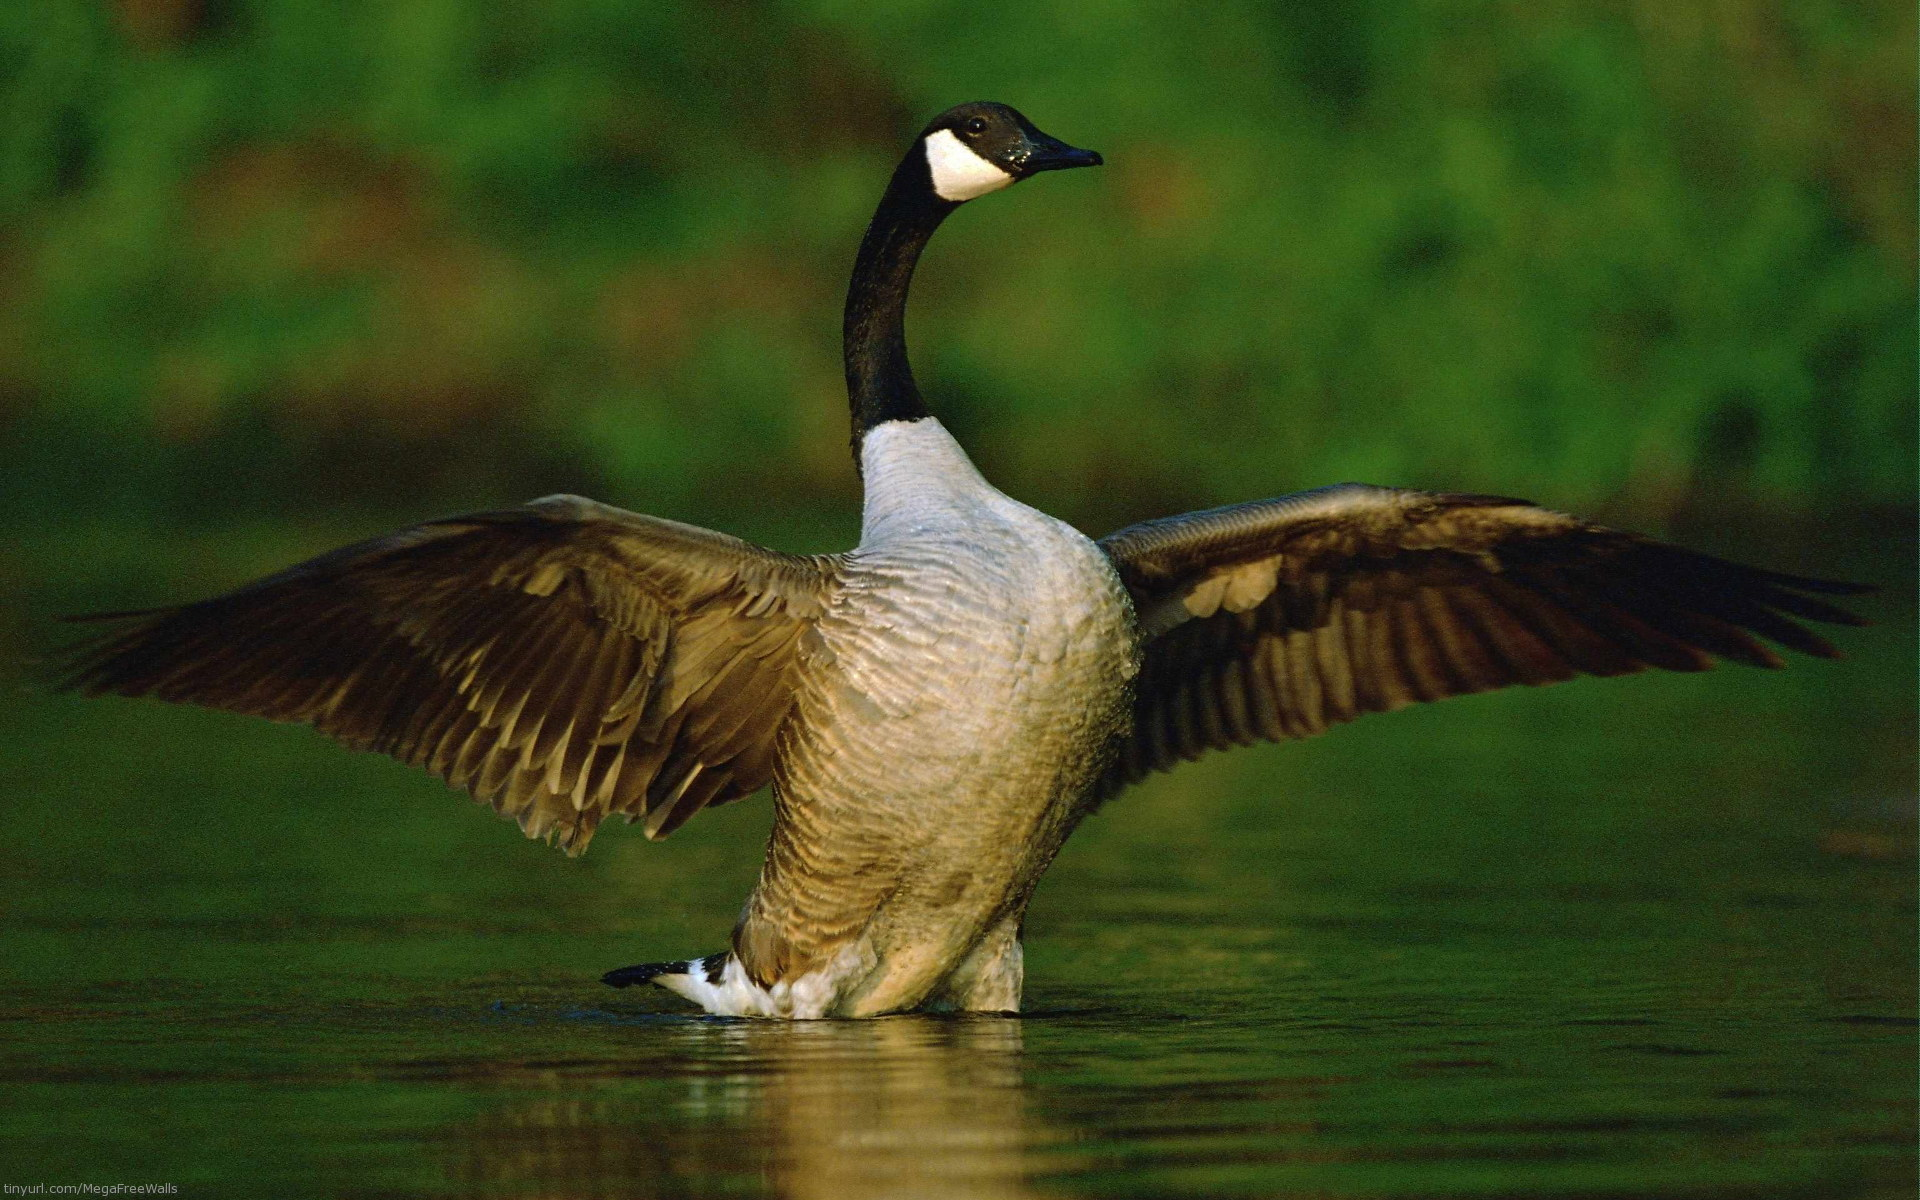 GOOSE CANADA WALLPAPERS FREE Wallpapers Background images 1920x1200